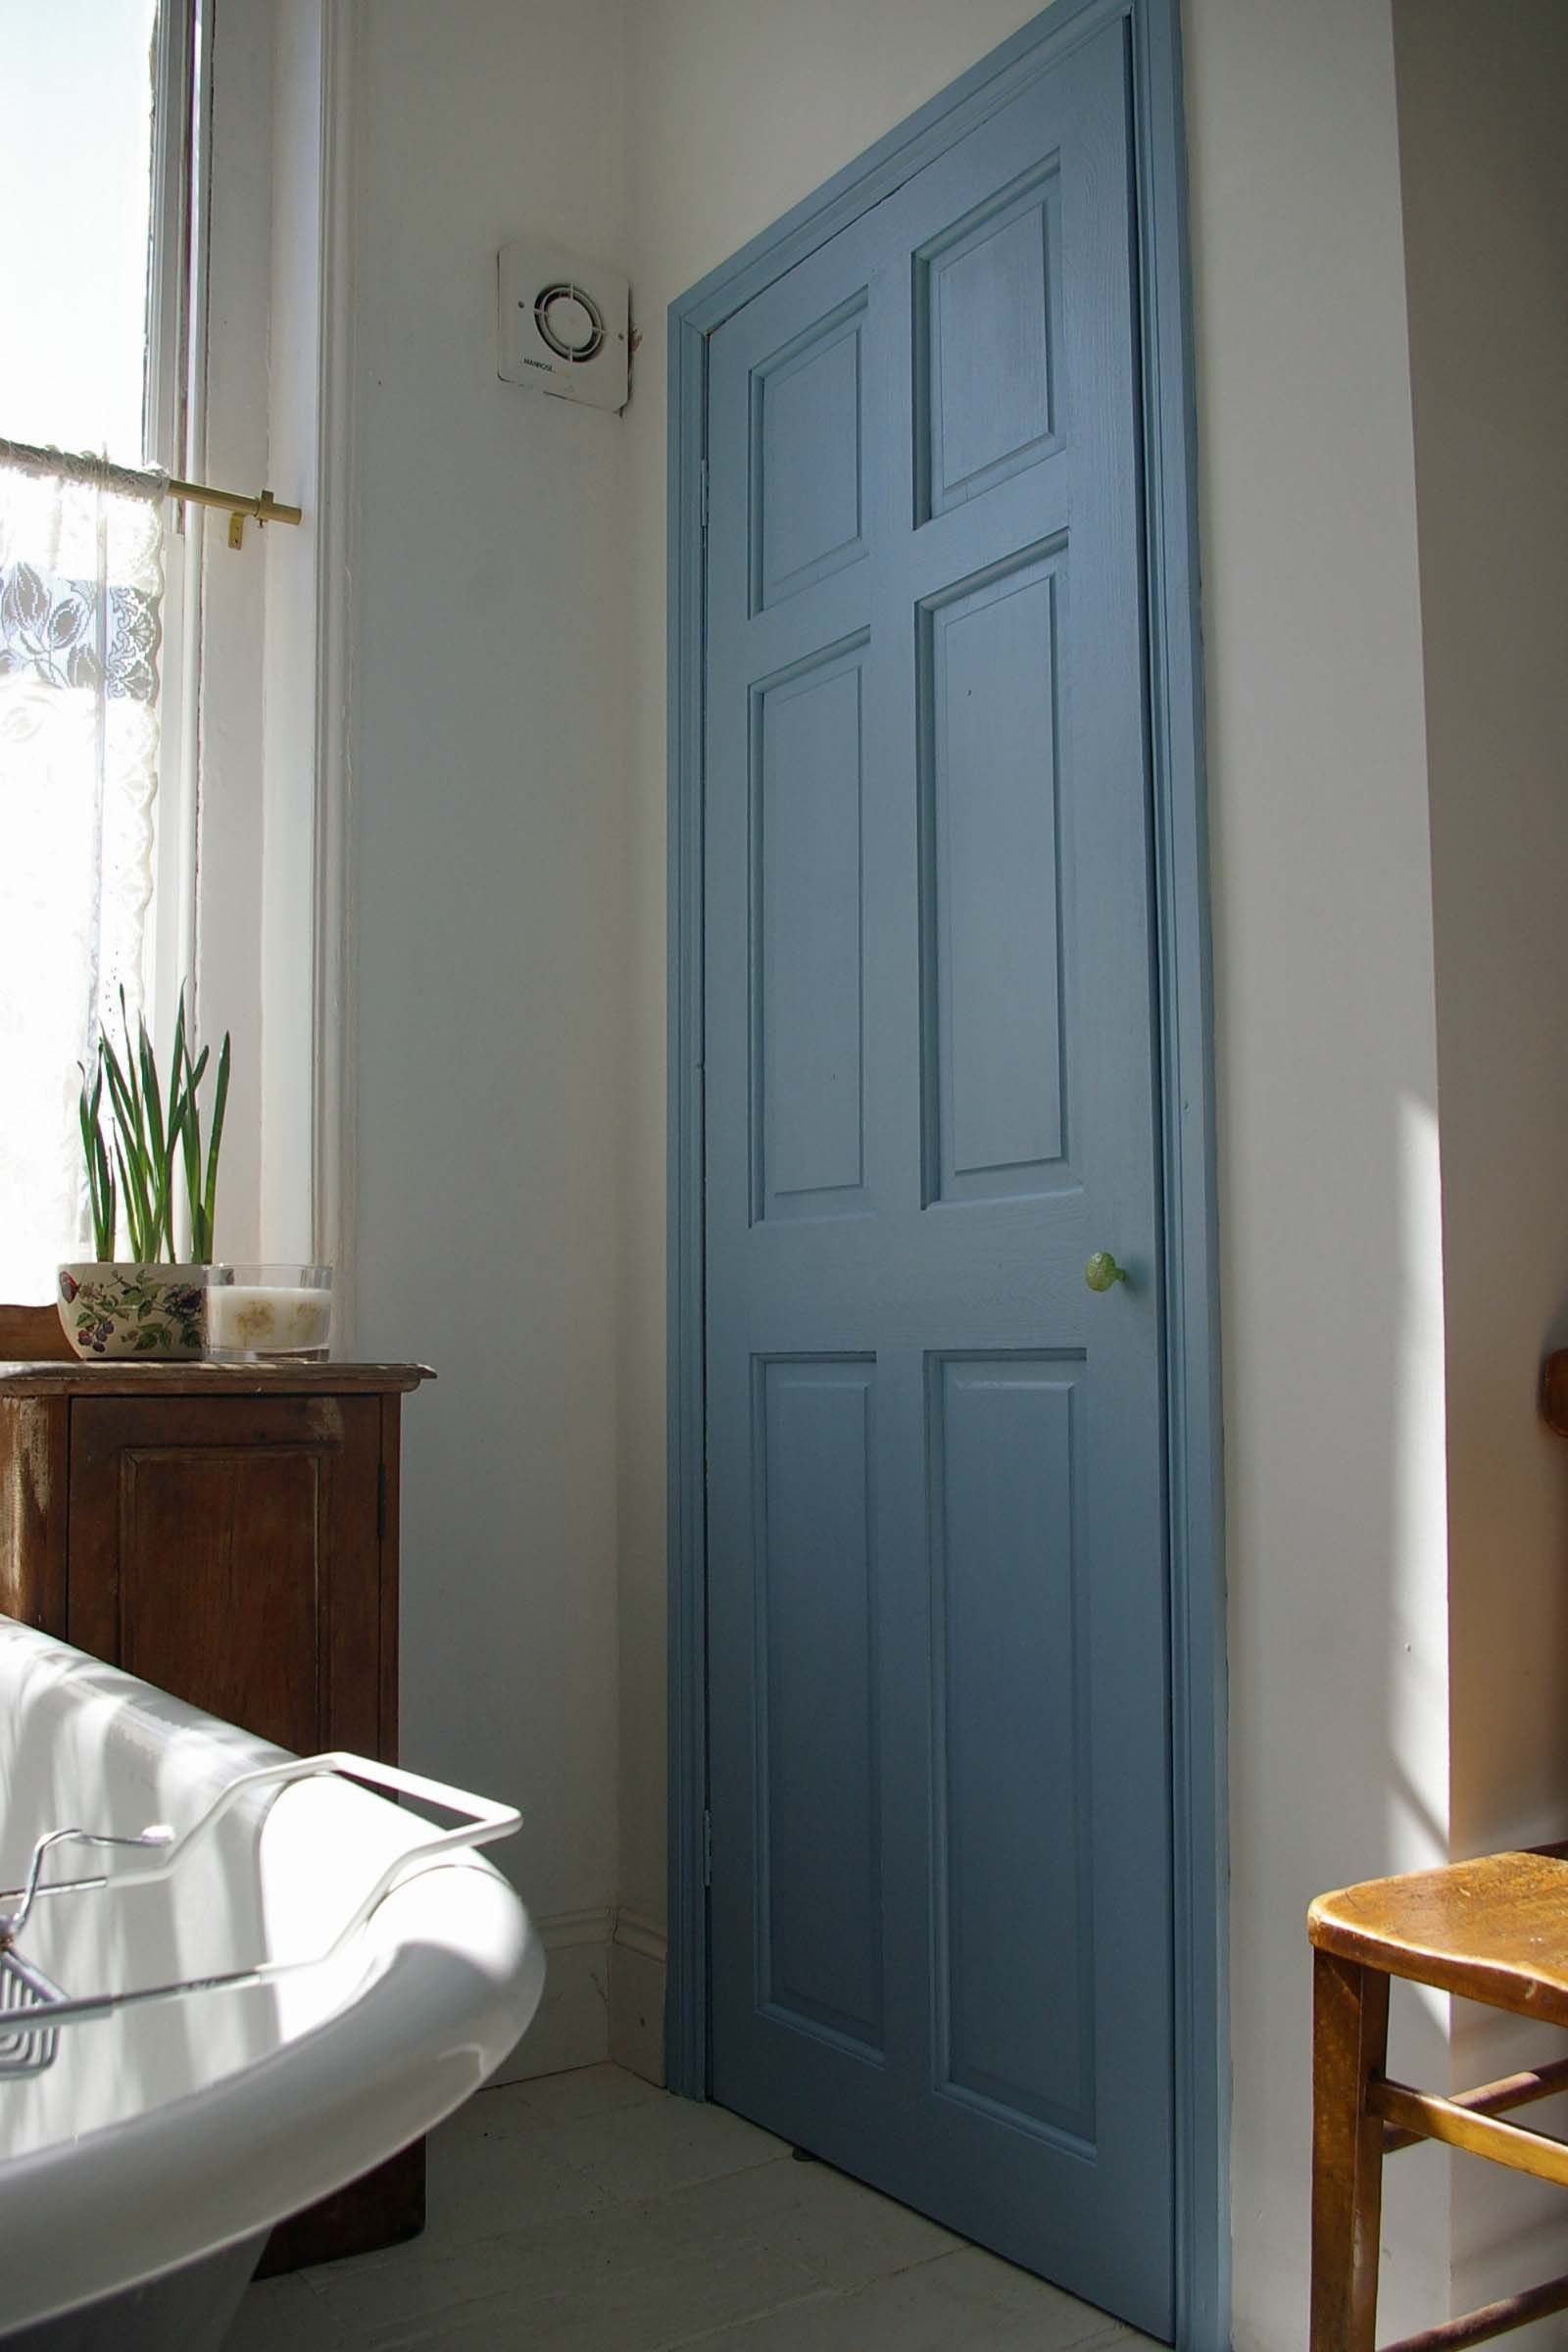 Ie closet doors and sometimes on an exterior door in conjunction with - Farrow Ball Lulworth Blue Door Great Idea To Add Some Colour By Painting Internal Doors Or Wardrobe Doors